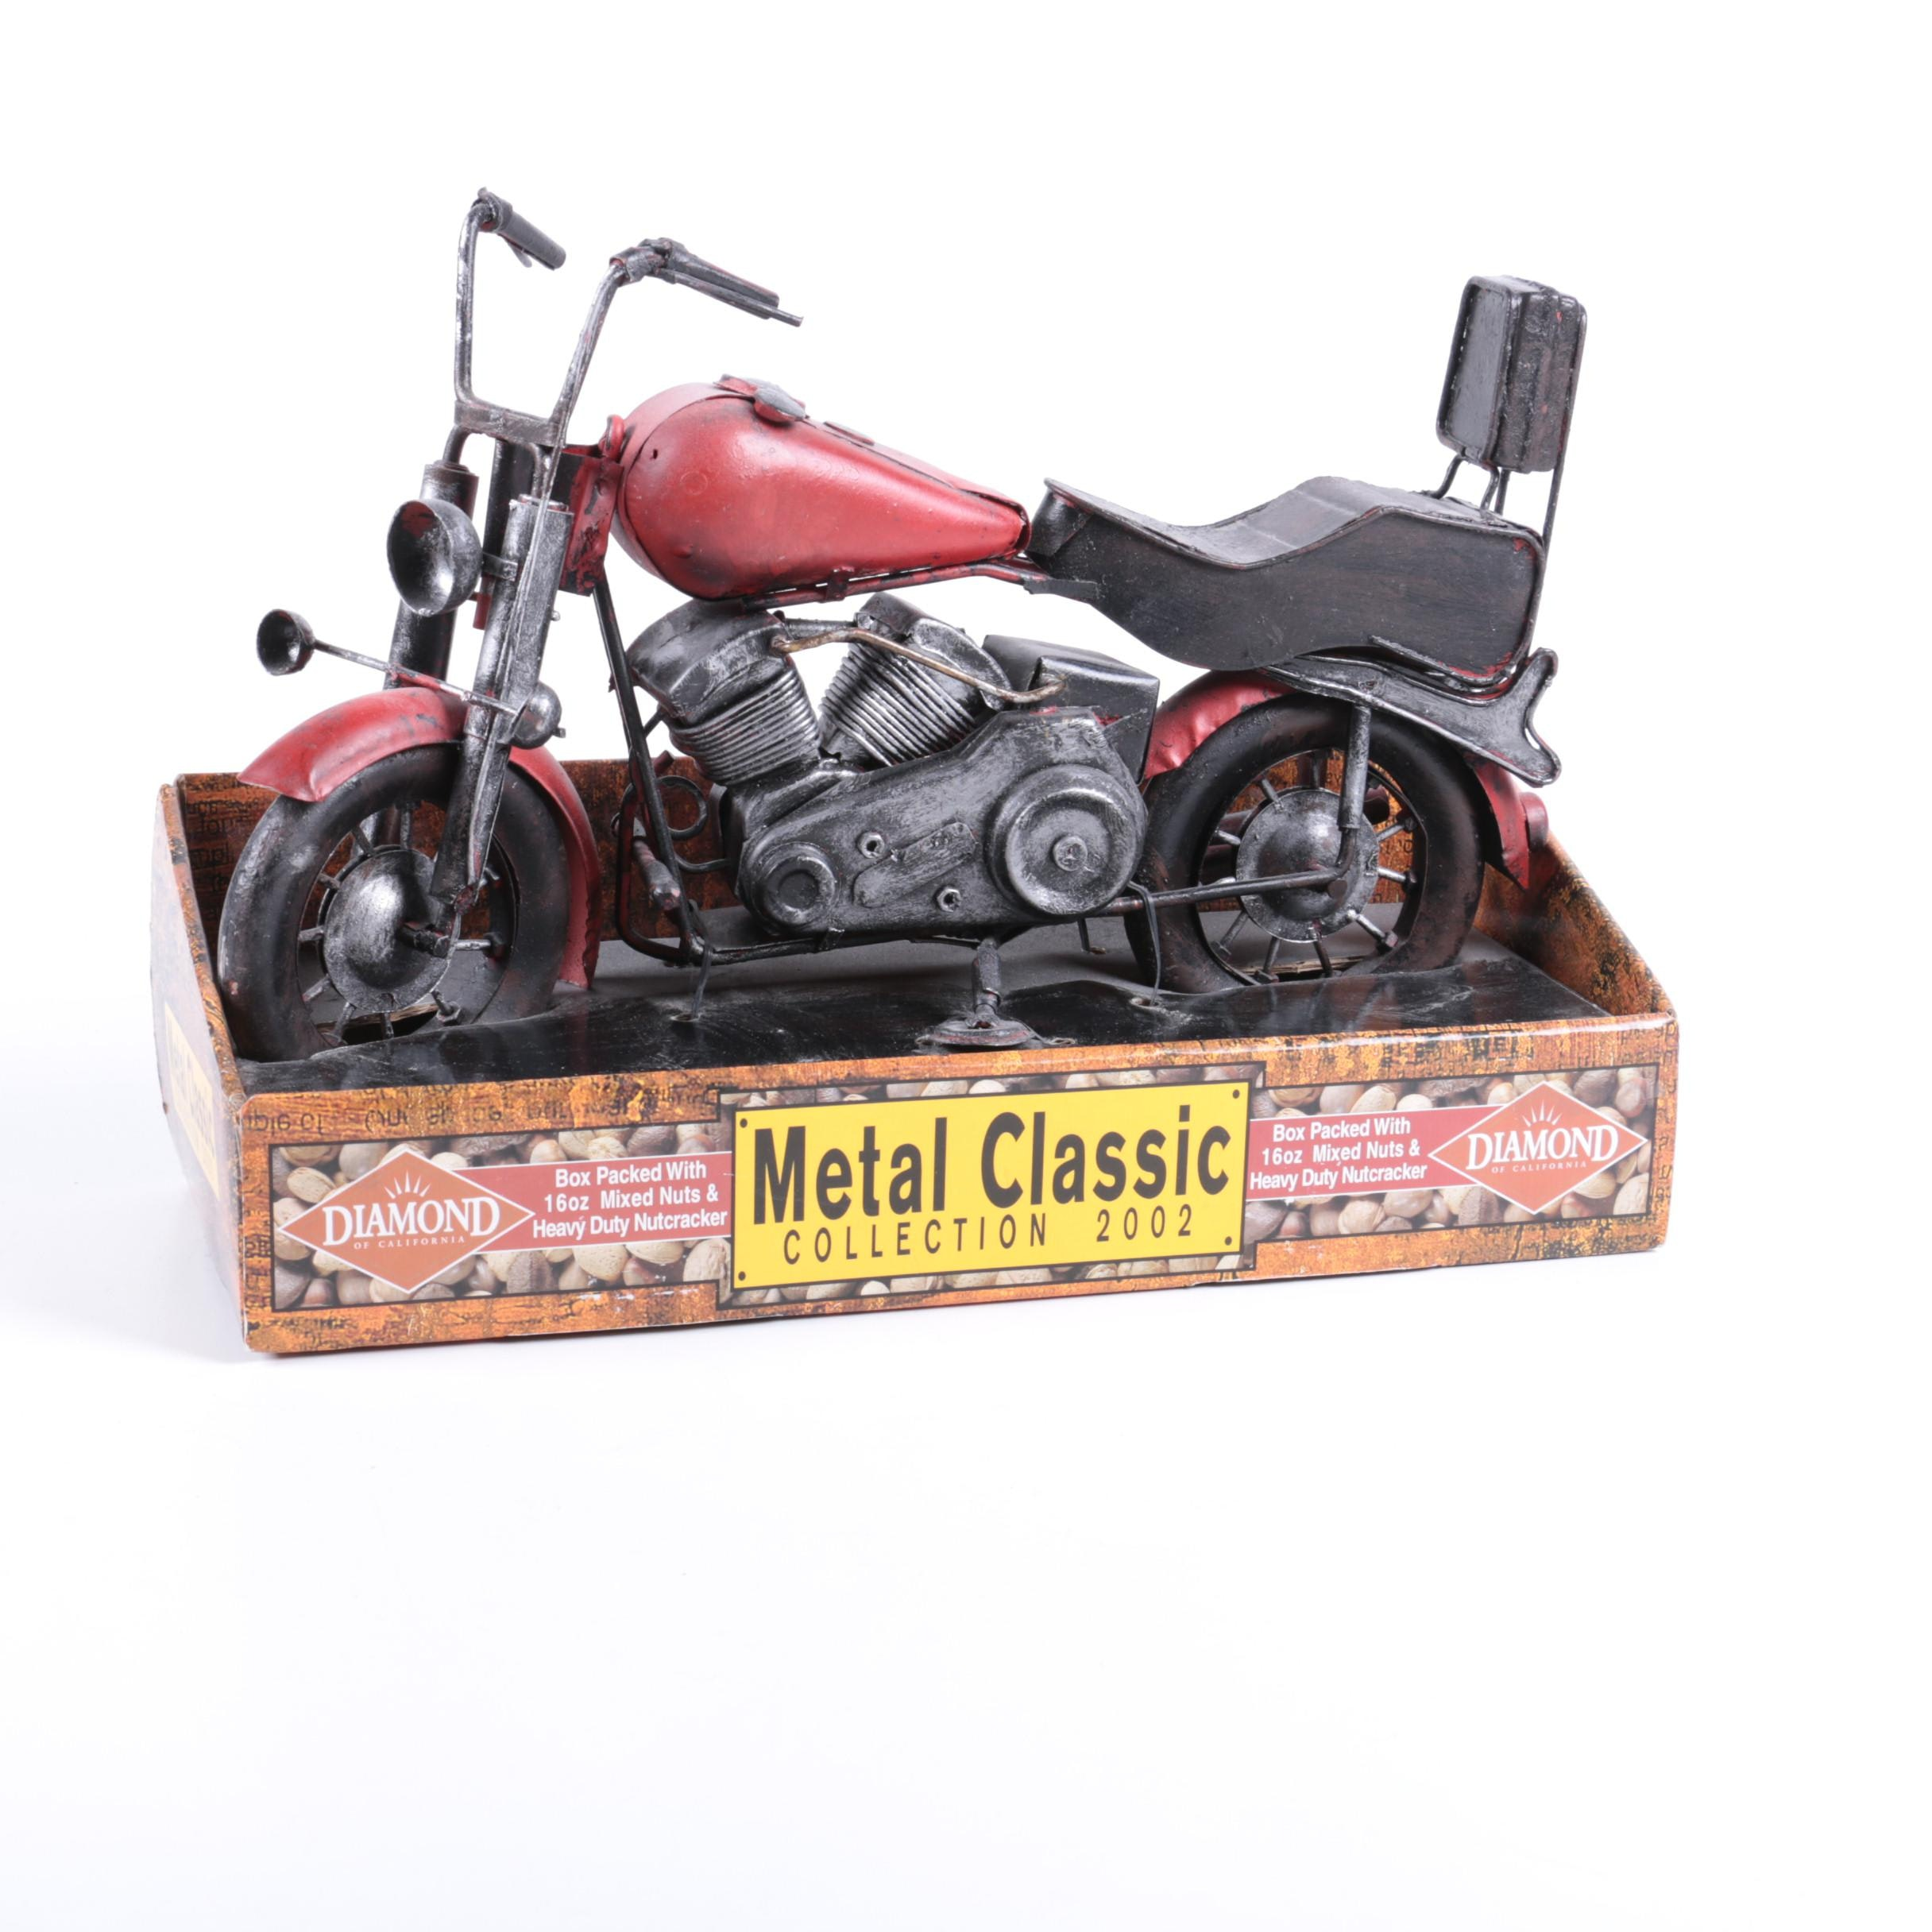 Metal Classic Collection 2002 Motorcycle